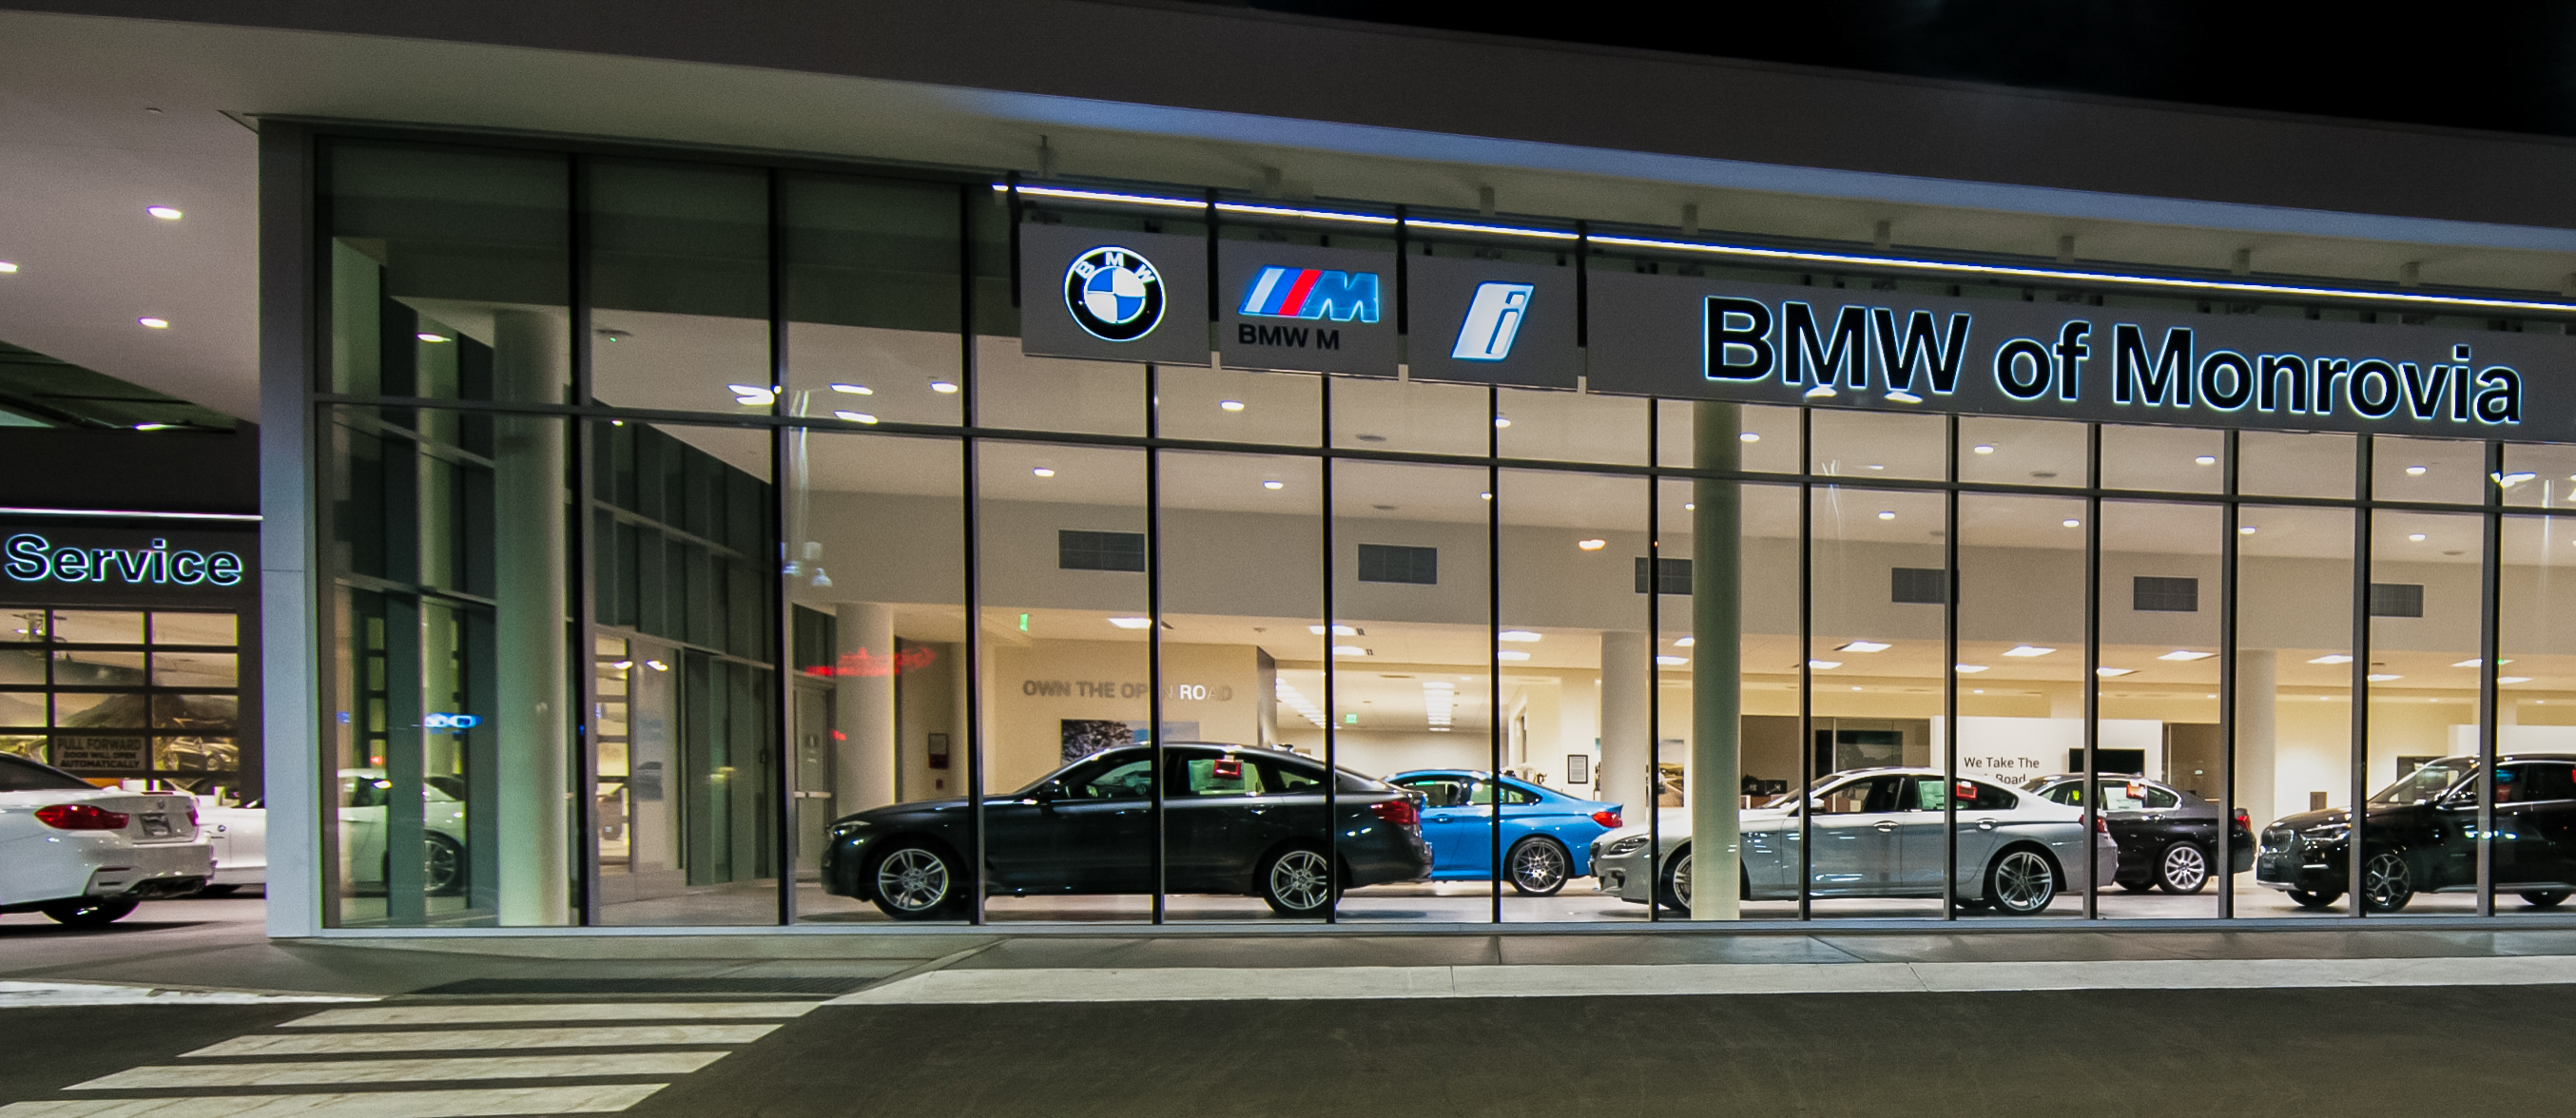 Monrovia bmw kunzik and sara construction inc for Mercedes benz of anaheim hills